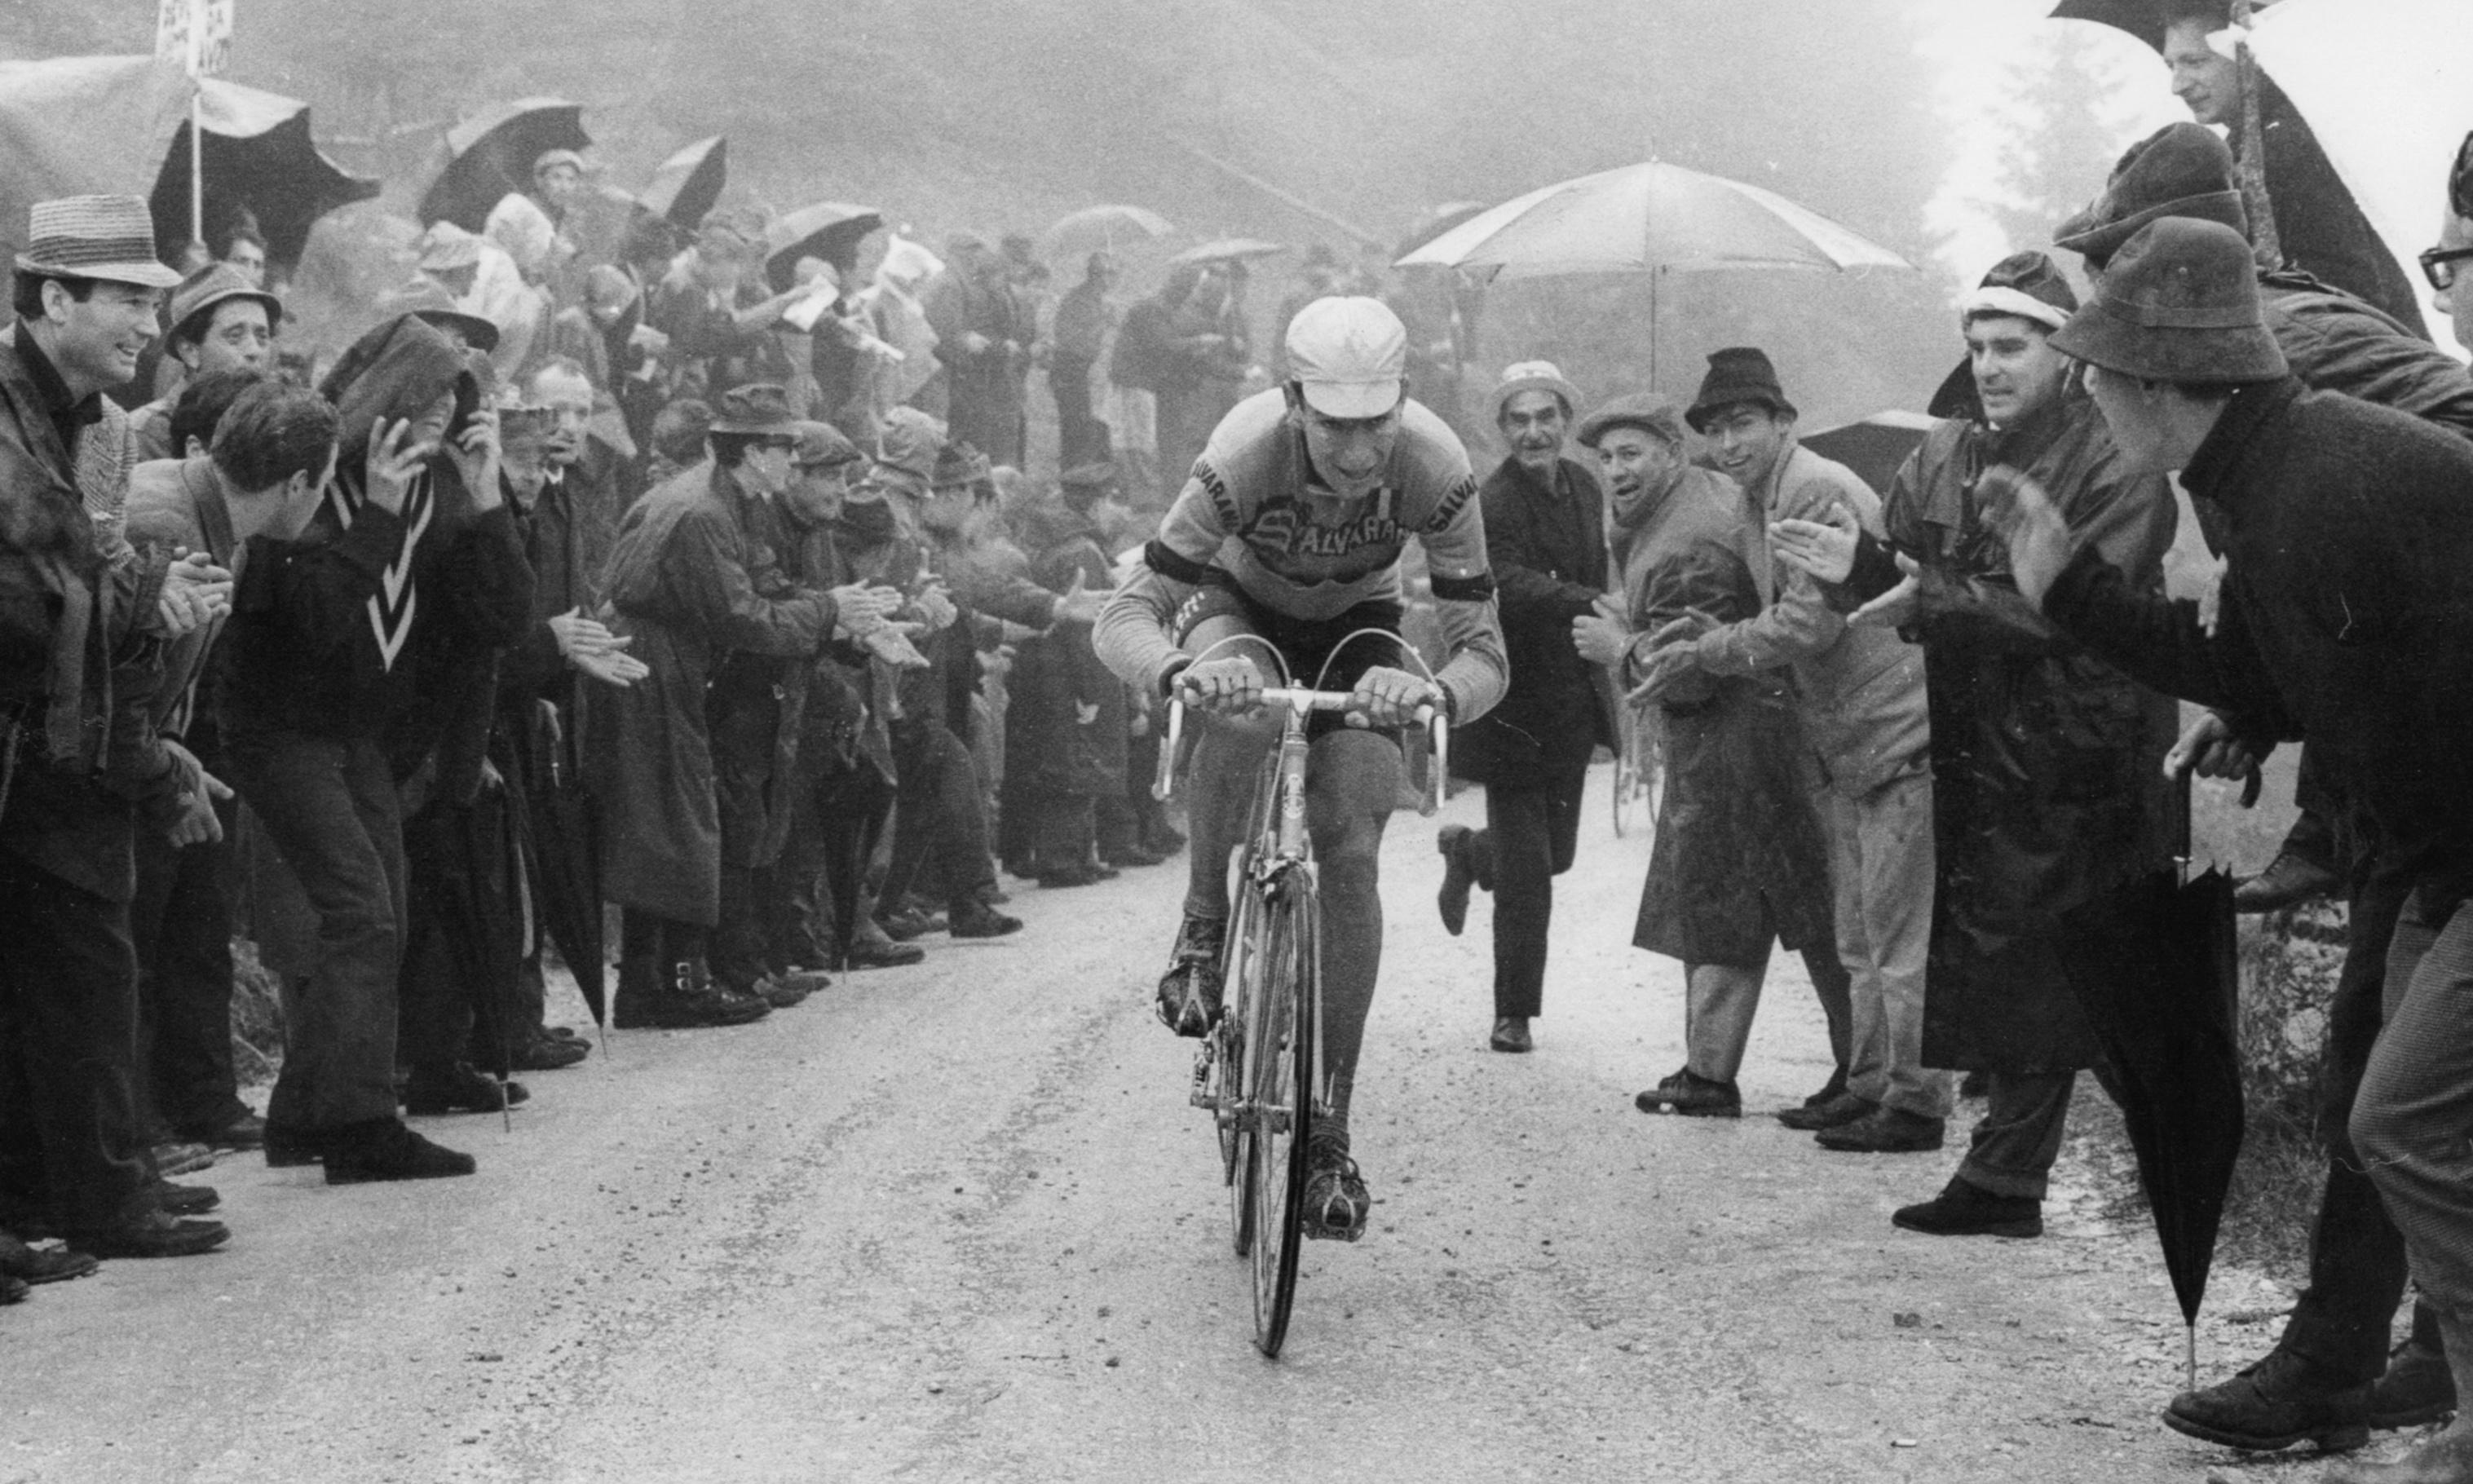 Felice Gimondi obituary